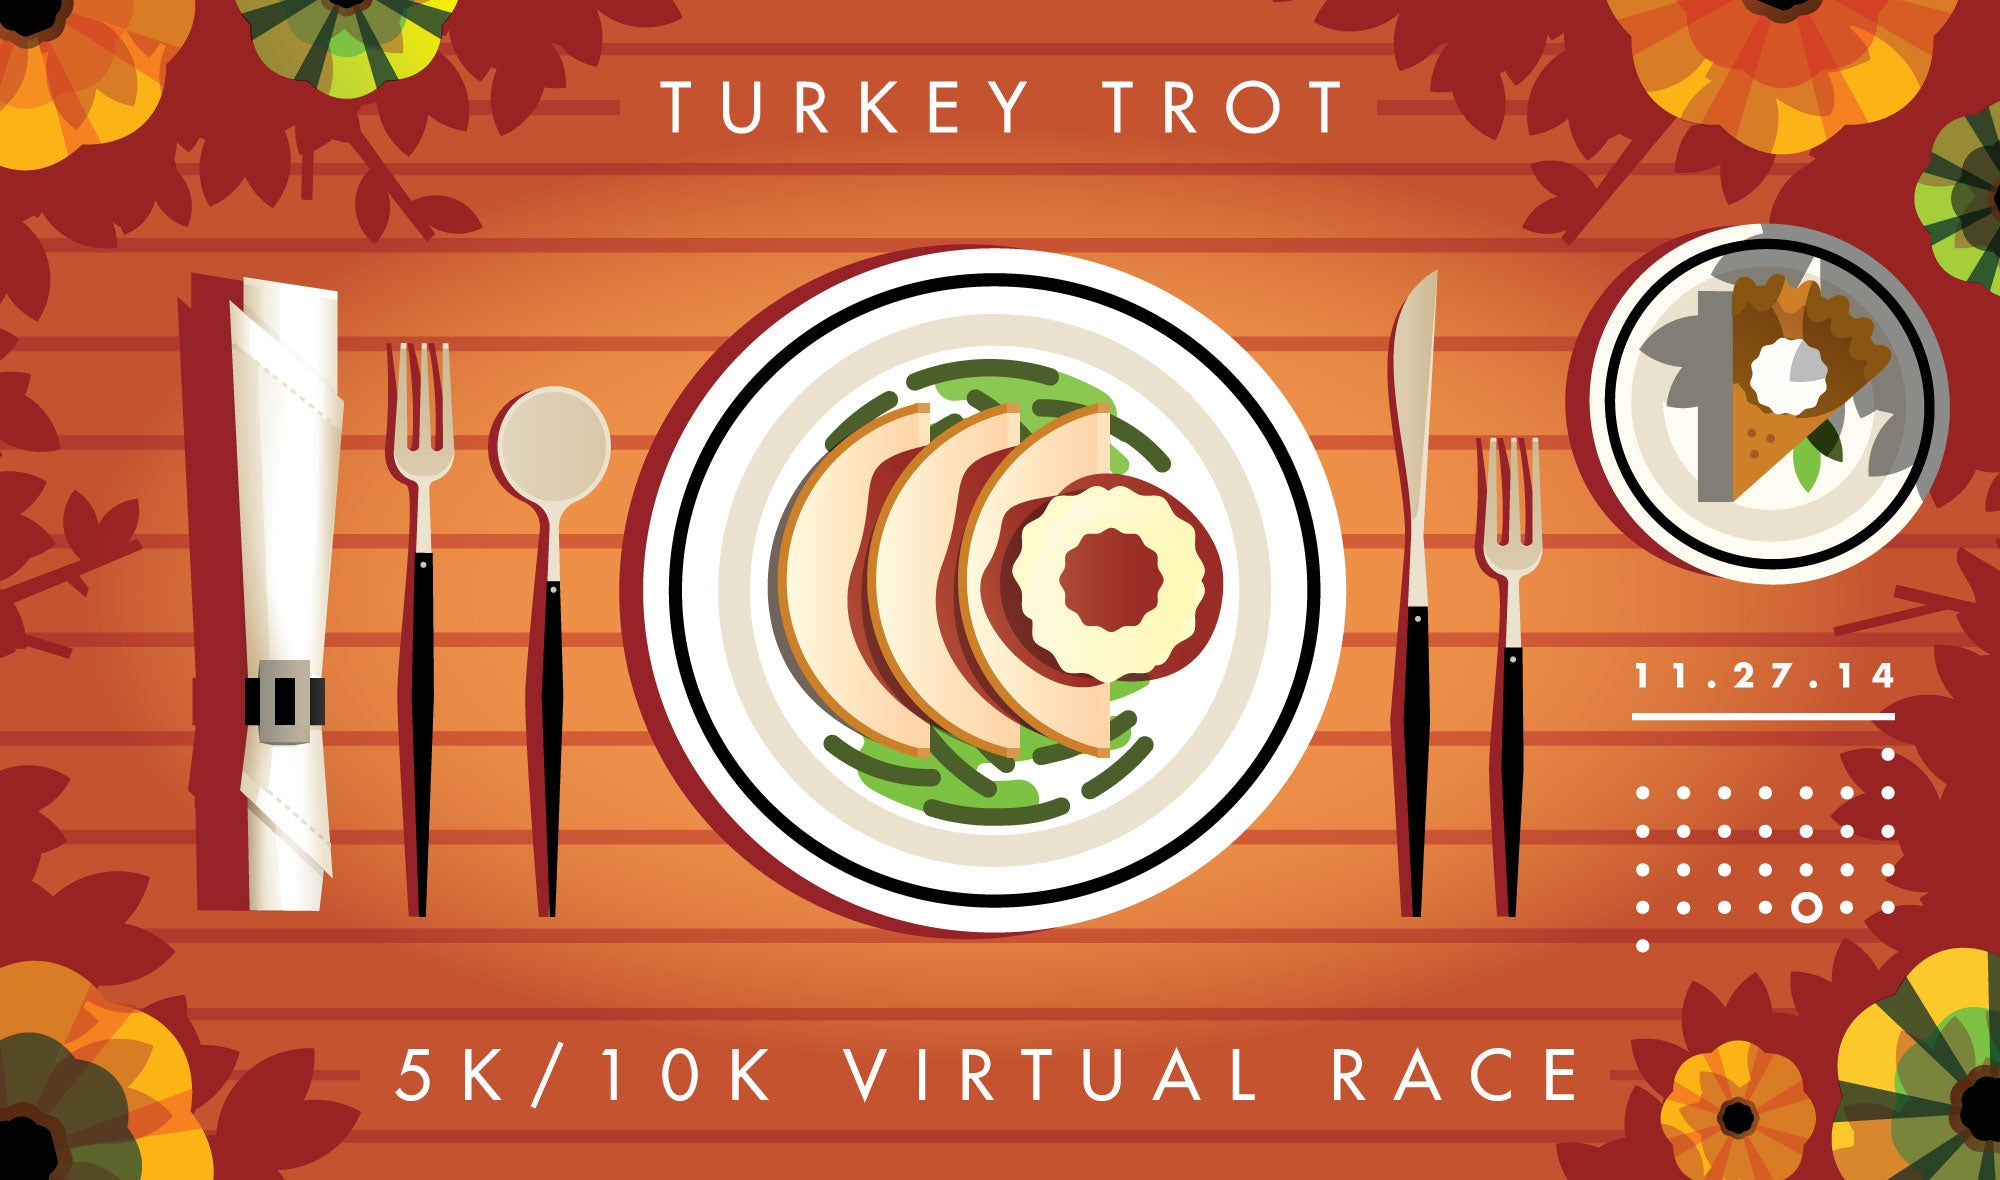 Rick Murphy thanksgiving turkey trot illustration